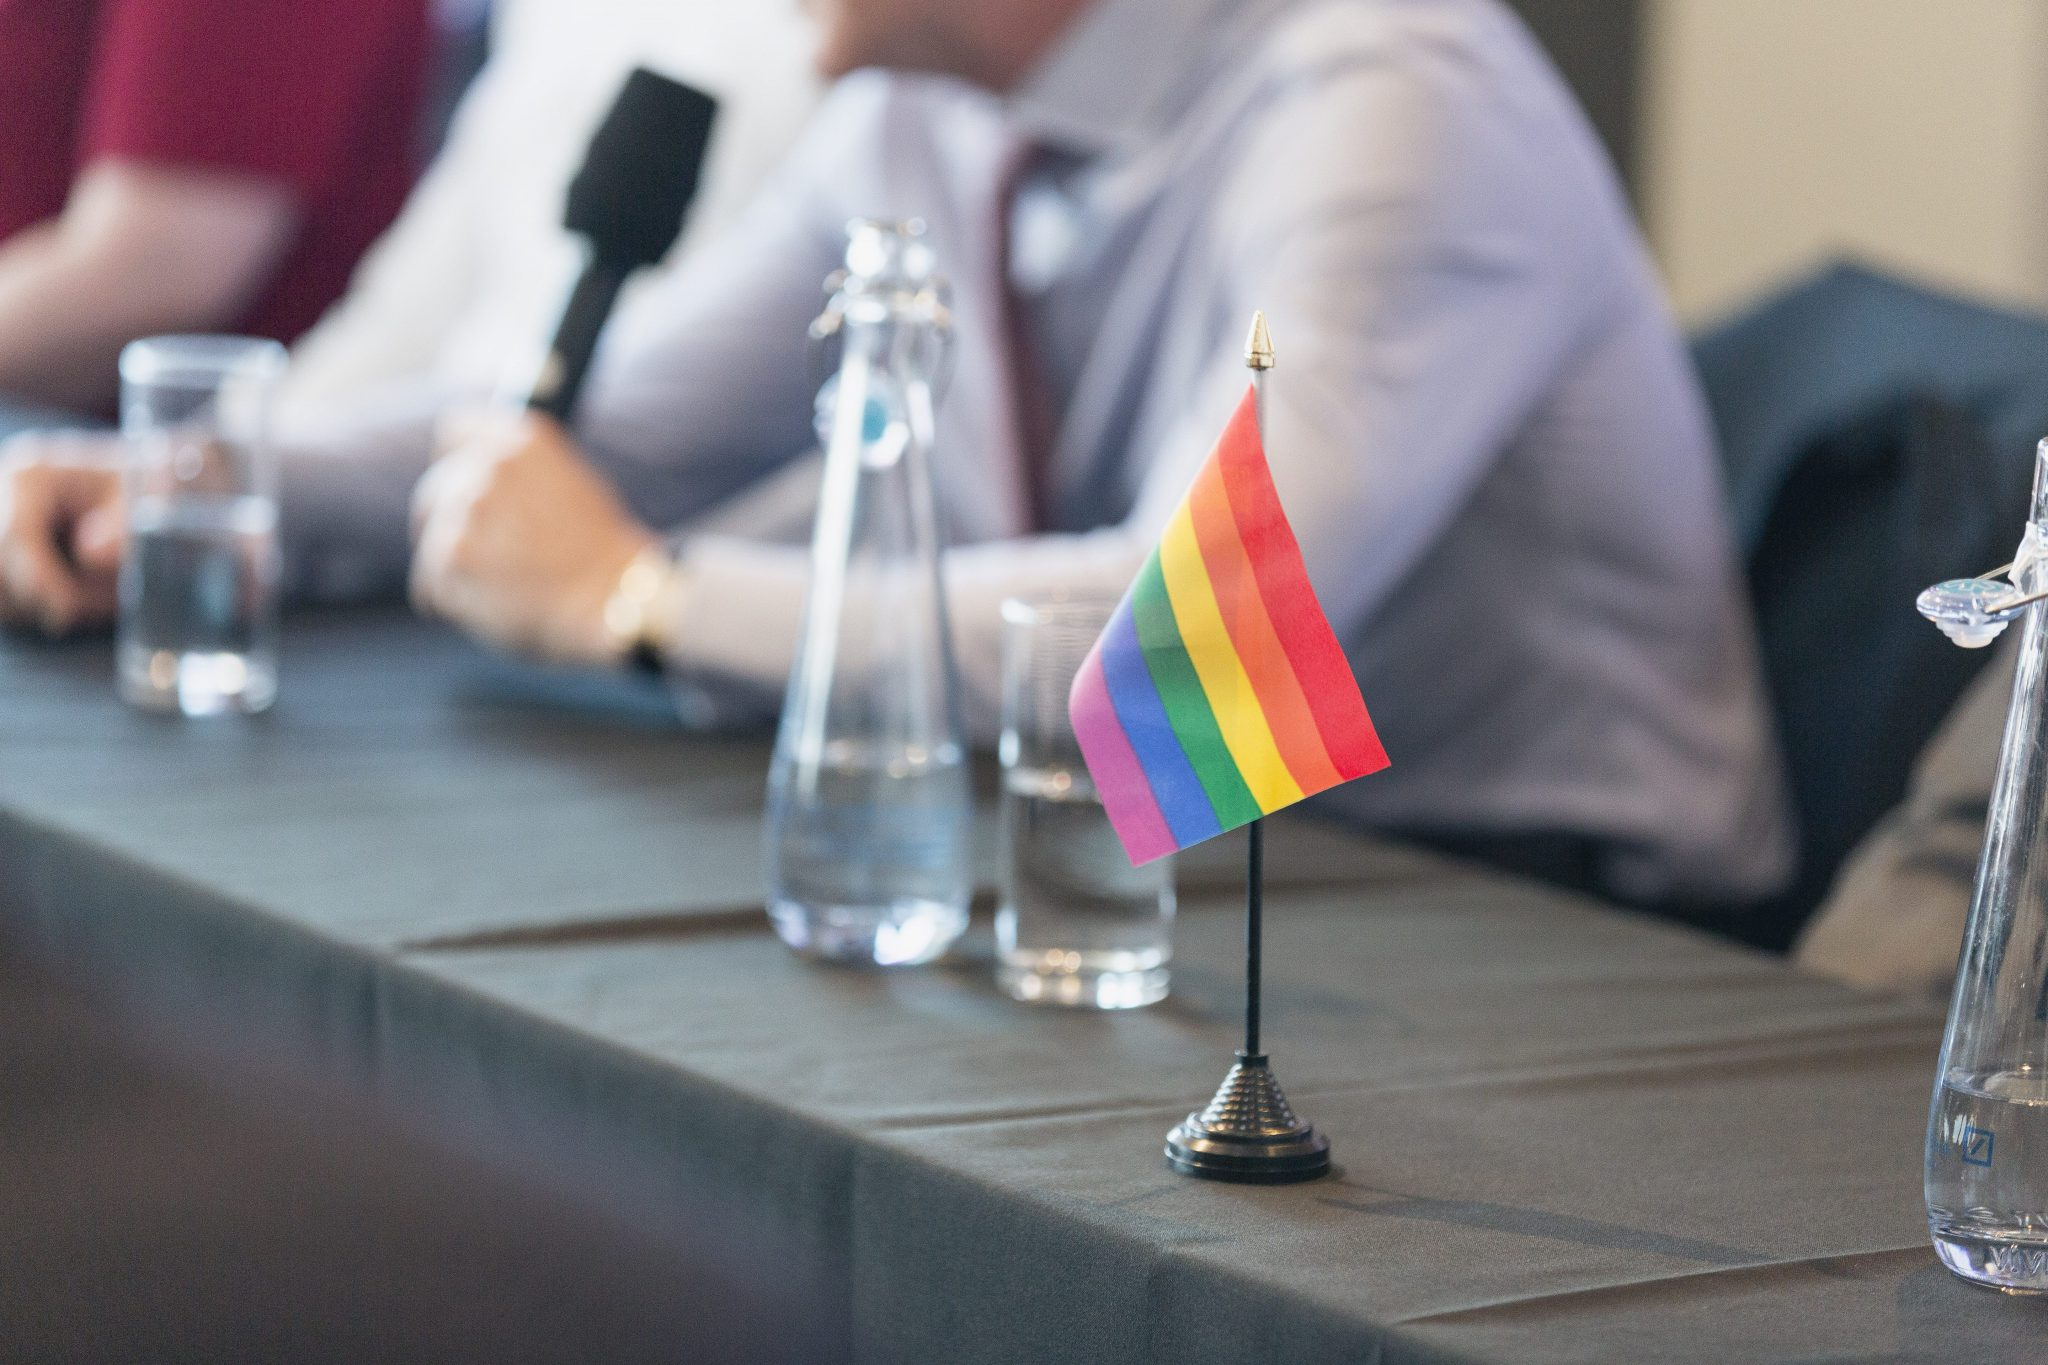 LGBTQ+ flag standing on a table at an Inside & Out event, with someone speaking into a microphone in the background